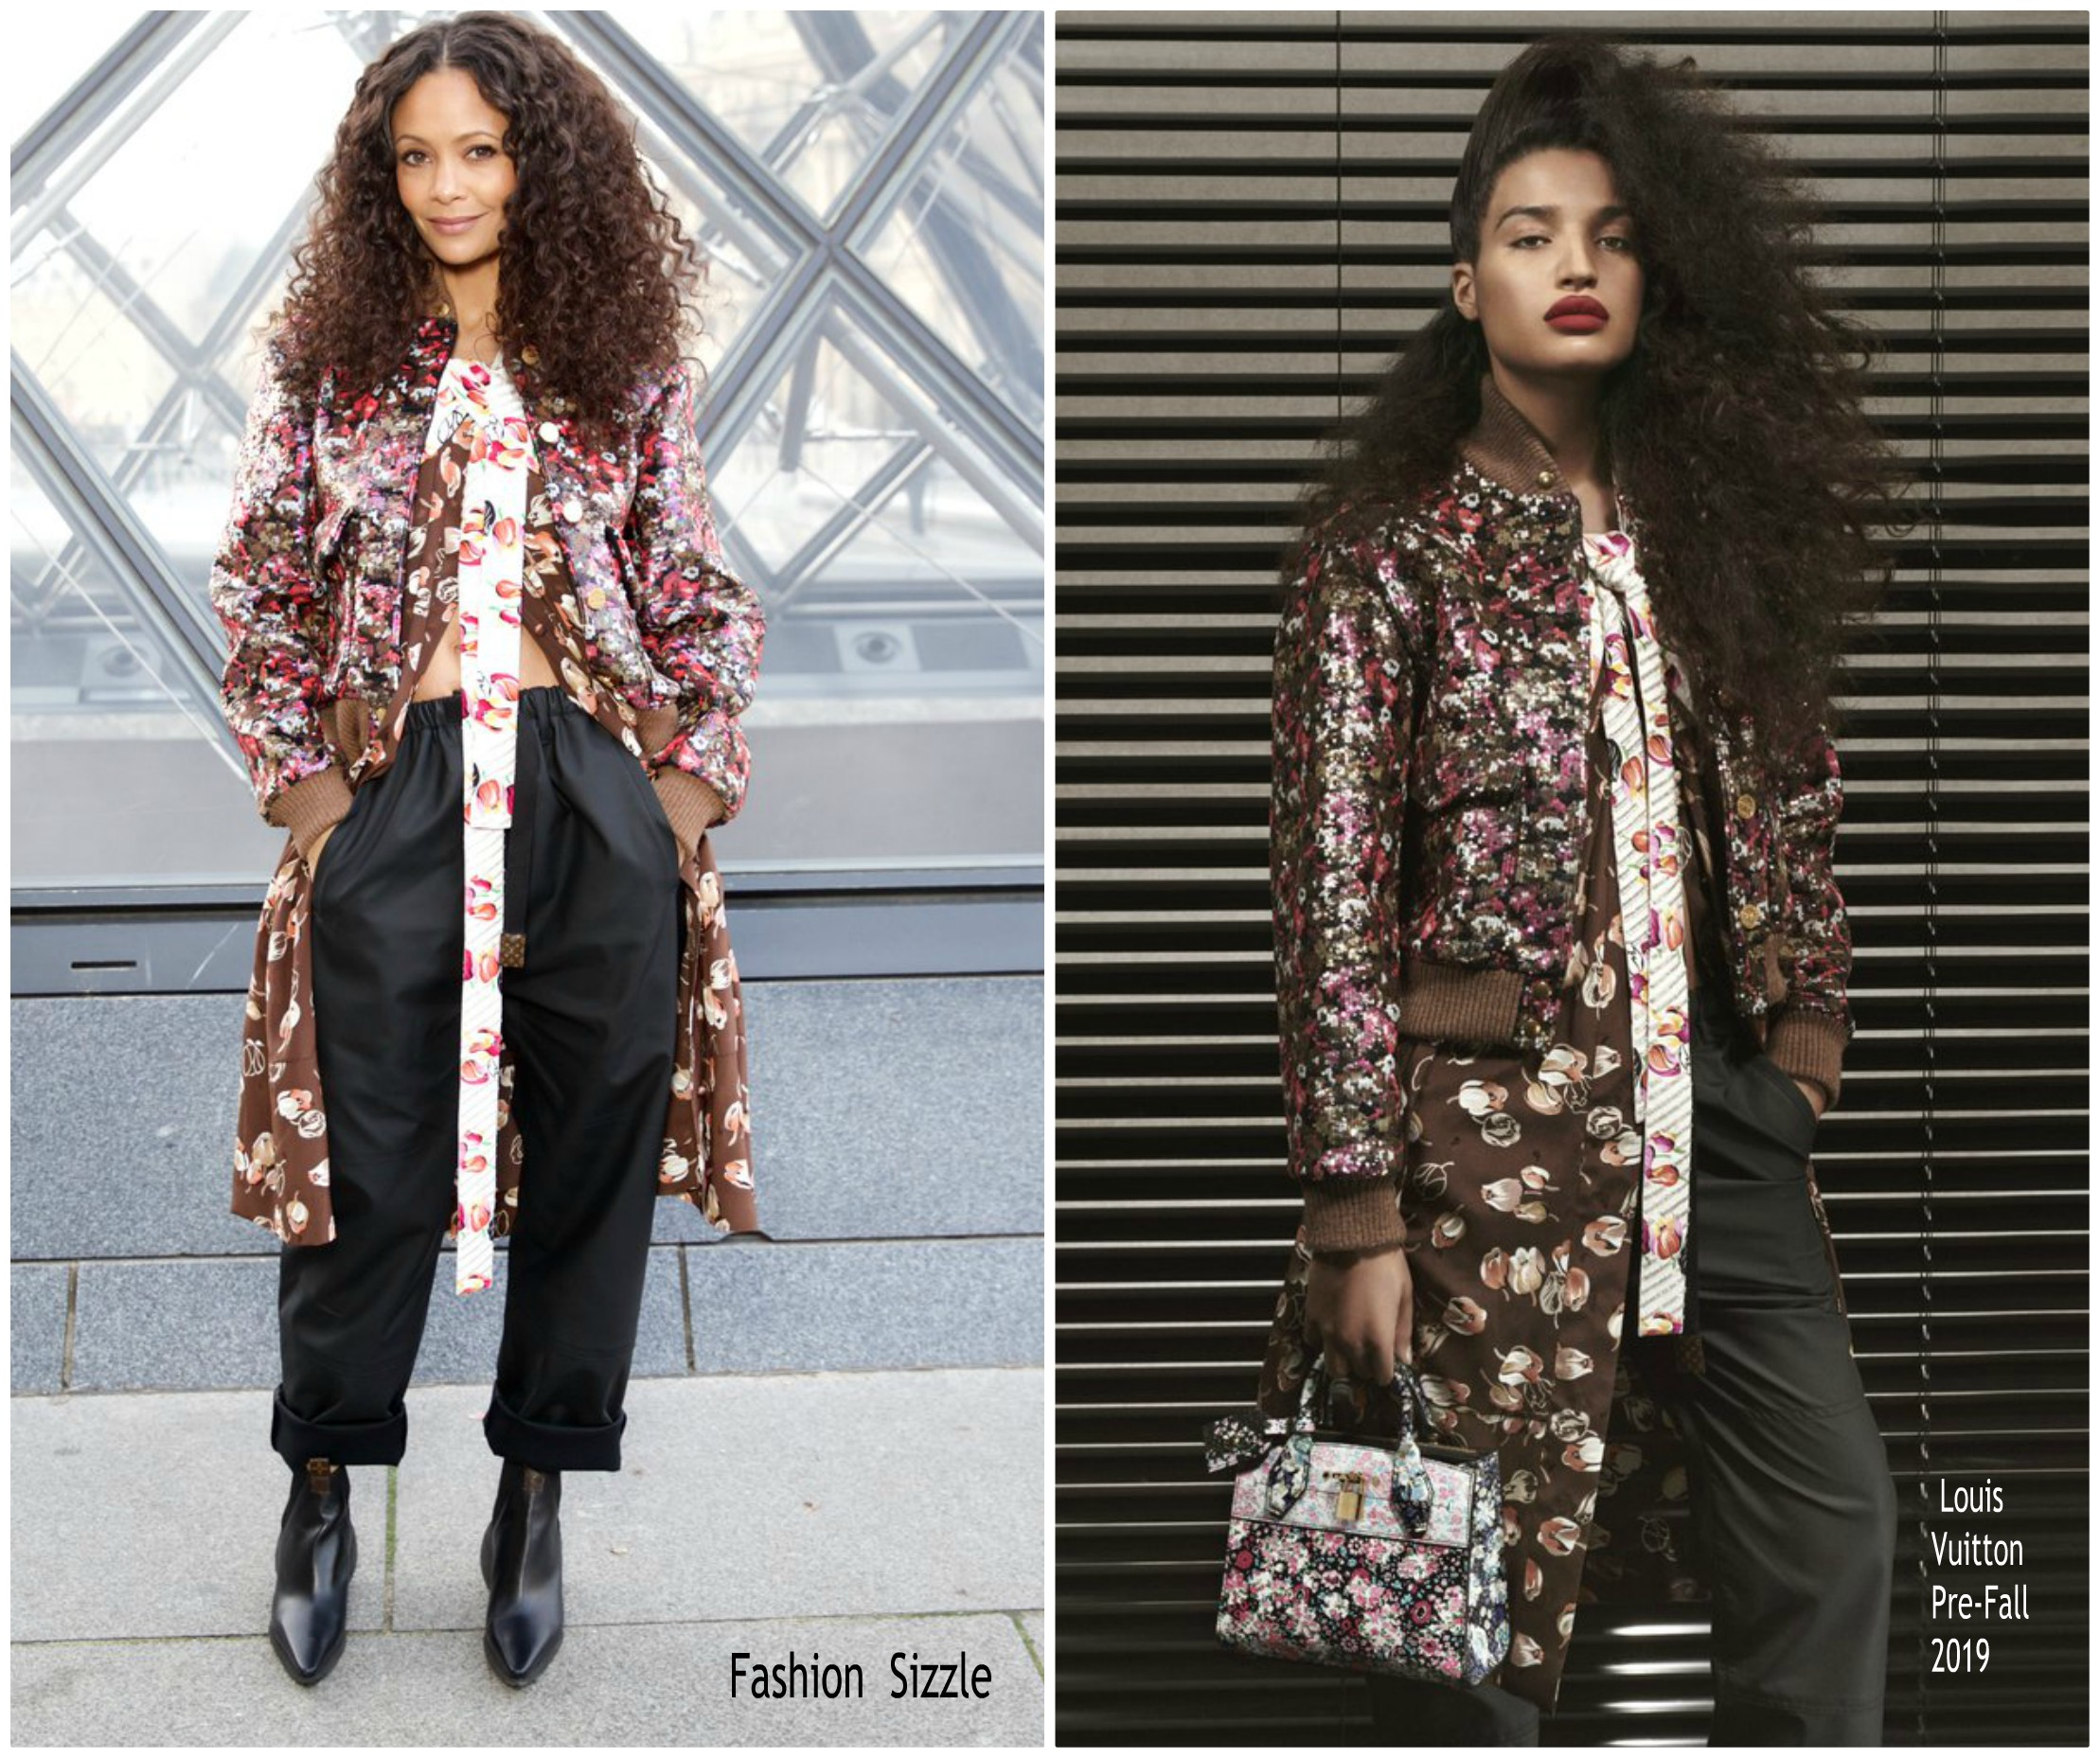 thandie-newton-in-louis-vuitton-louisvuitton-Fall-2019